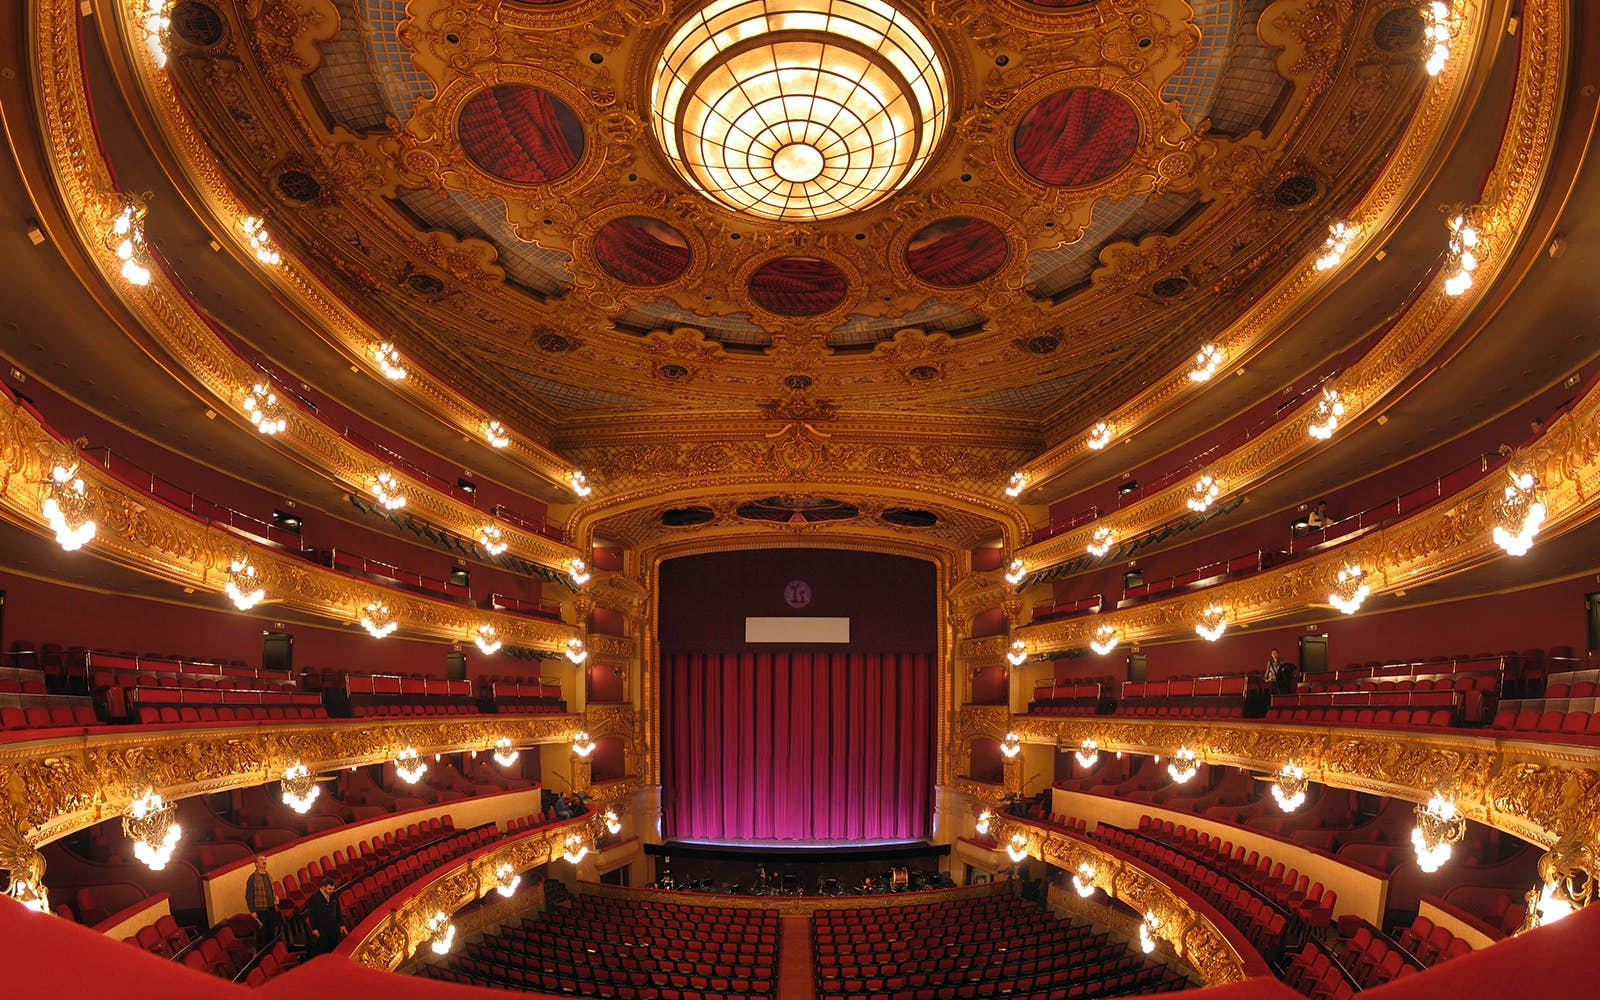 gran teatre del liceu guided tour-1